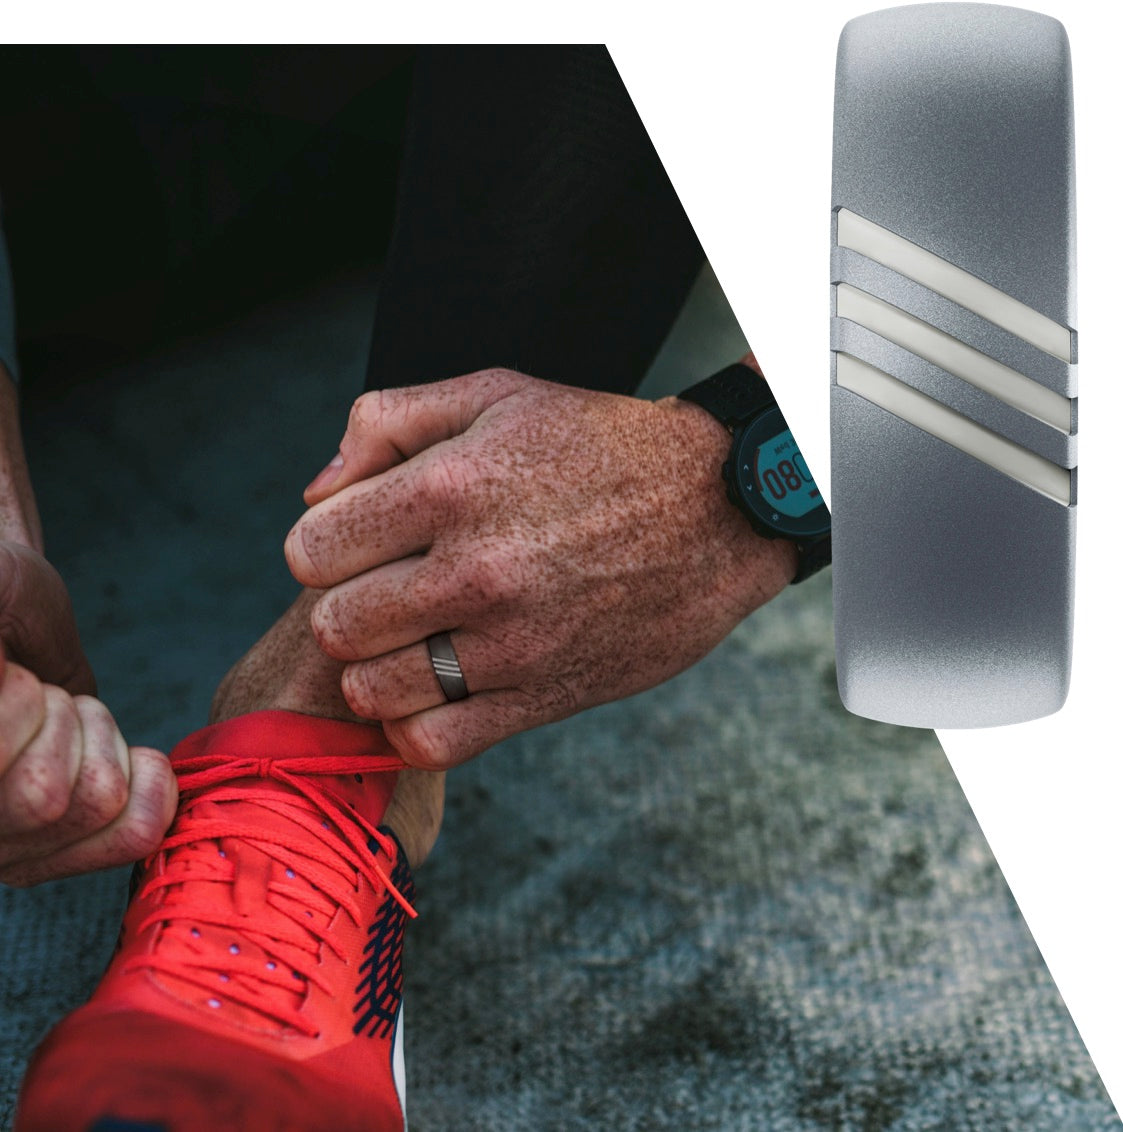 Runner wearing a silicone ring